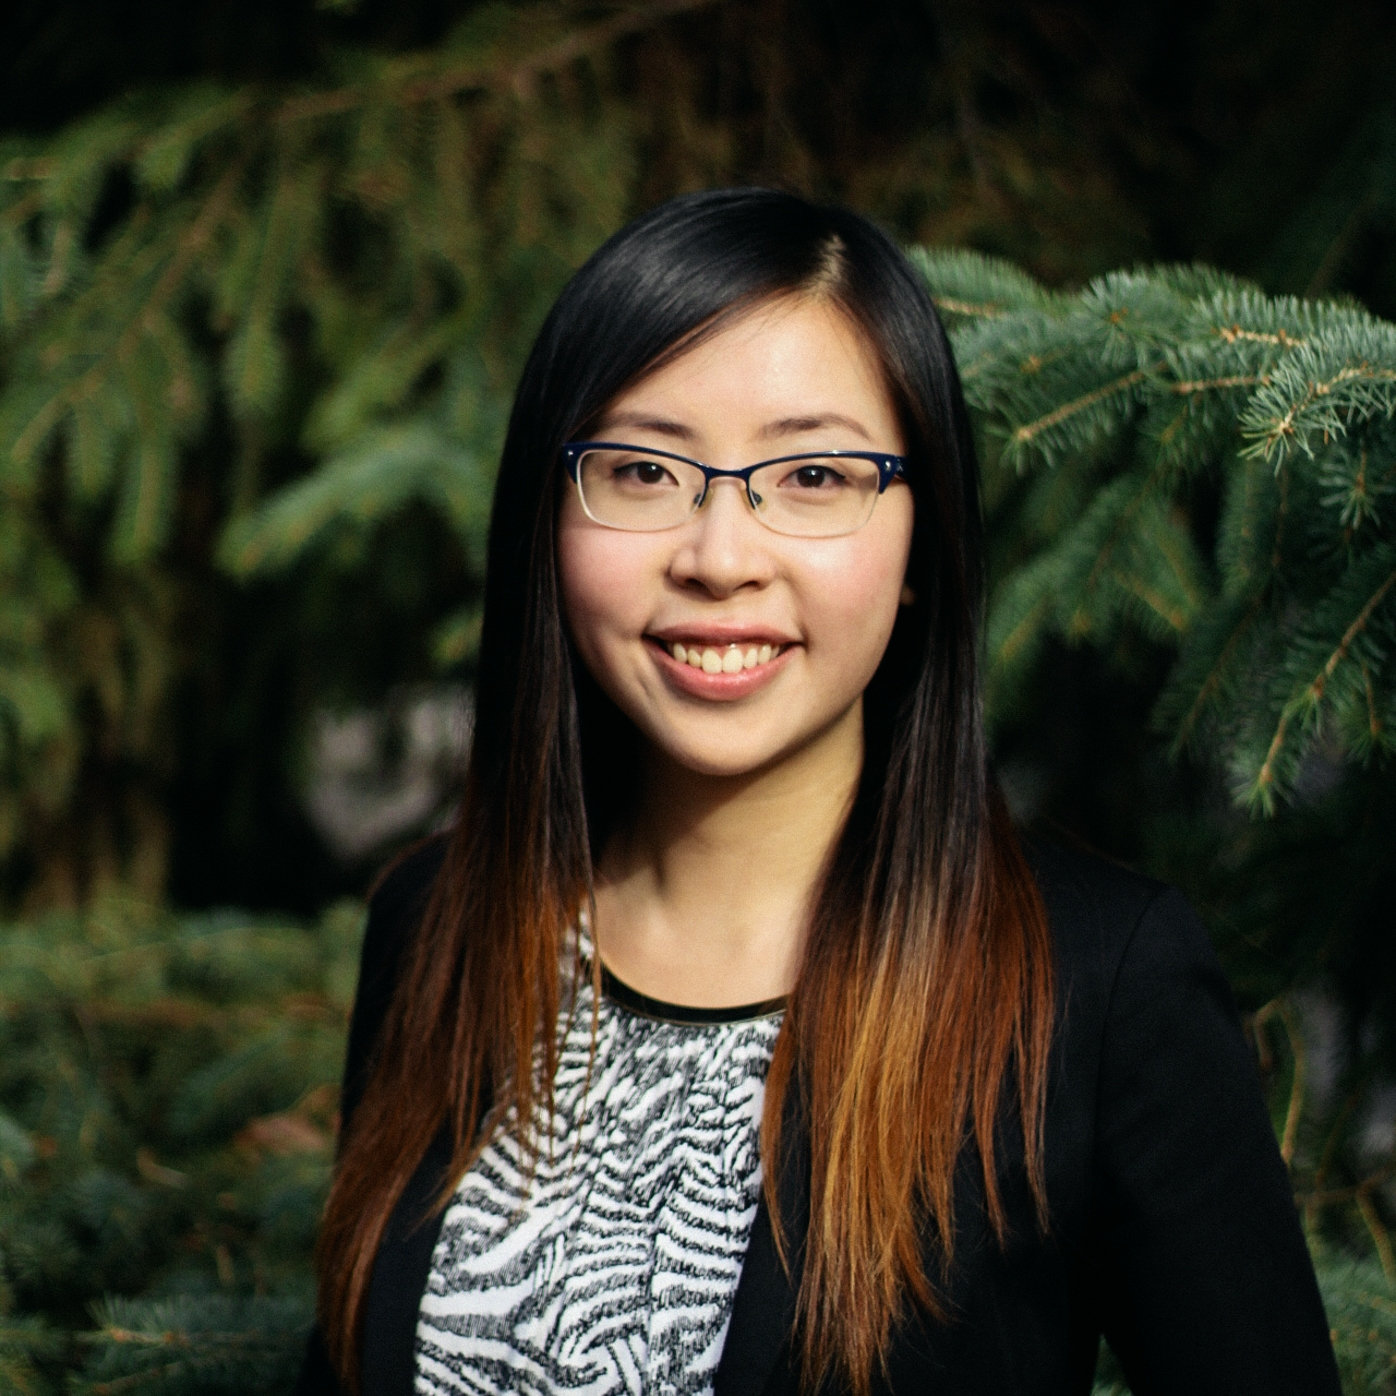 Director of Finance:Rose Wu - Rose is currently studying at the Alberta School of Business, majoring in Accounting and minoring in Psychology. Outside of Enactus, Rose loves travelling and exploring different food places. After graduation, Rose plans to pursue the CPA designation and work at a public accounting firm.